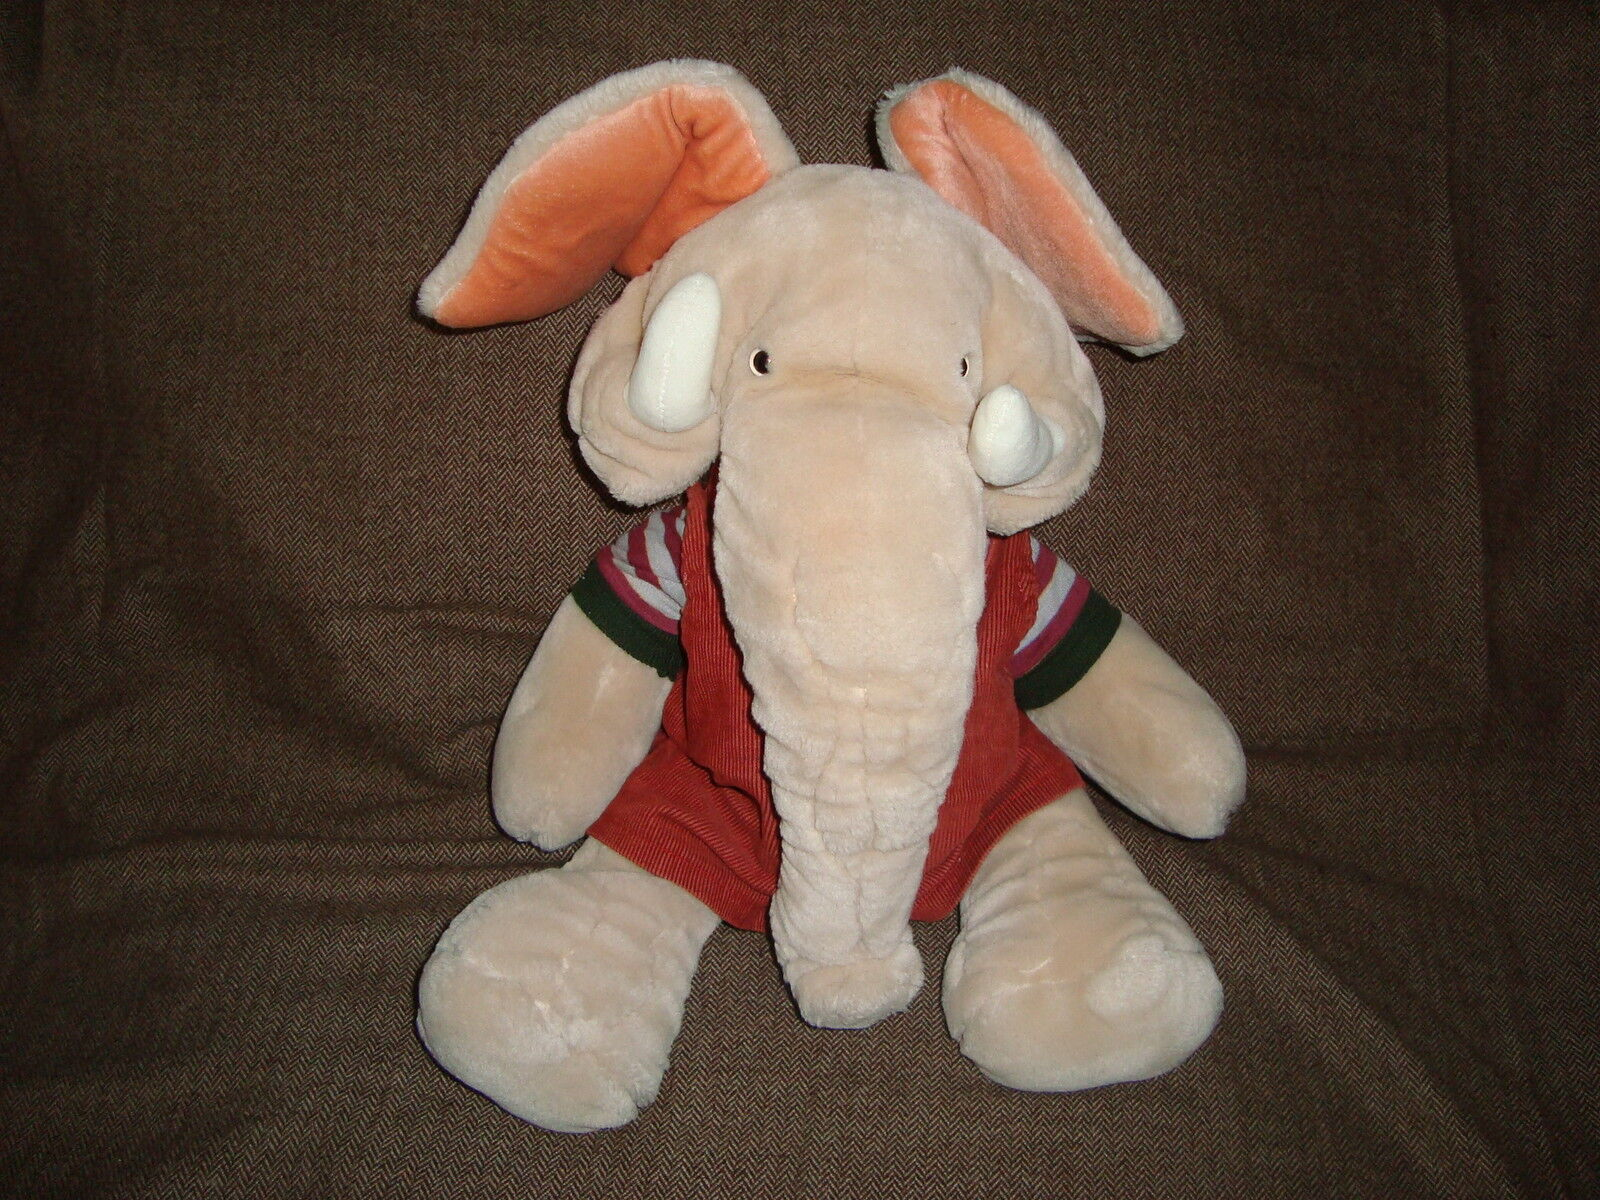 Wrinkles Wrinkles Elephant Full Body Hand Puppet Boy Trunkit Vintage 1985 Plush 18